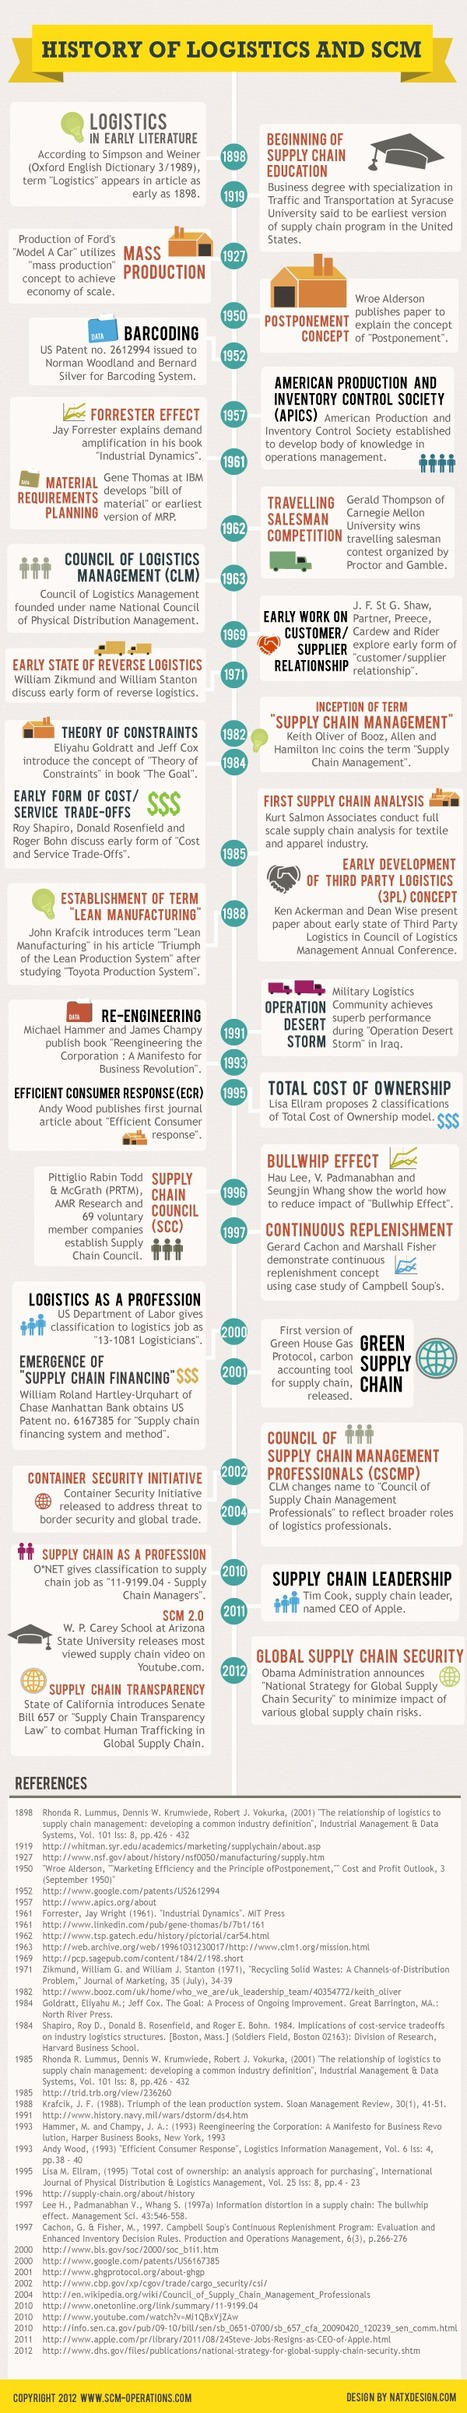 History-of-Logistics-and-Supply-Chain-Management1.png (600x3100 pixels) | Global Logistics | Scoop.it